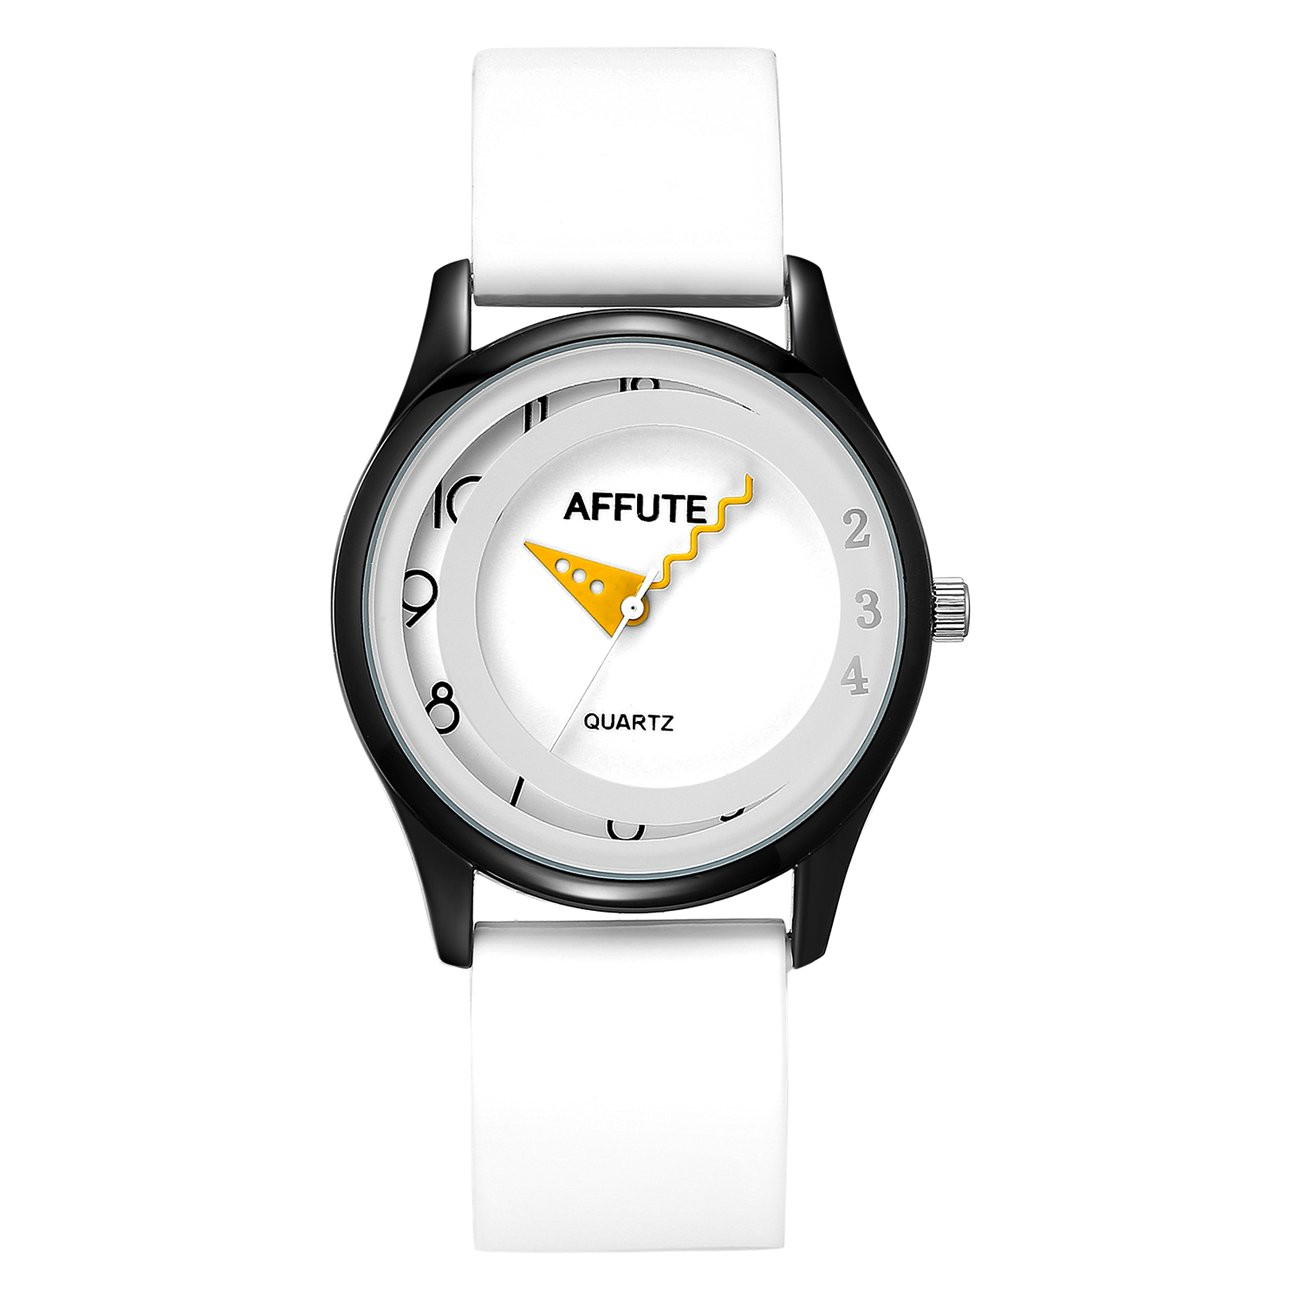 Tamlee Fashion Simple Colorful Silicon Rubber Strap Waterproof Unisex Jelly Thin Quartz Wrist Watches for Men Women